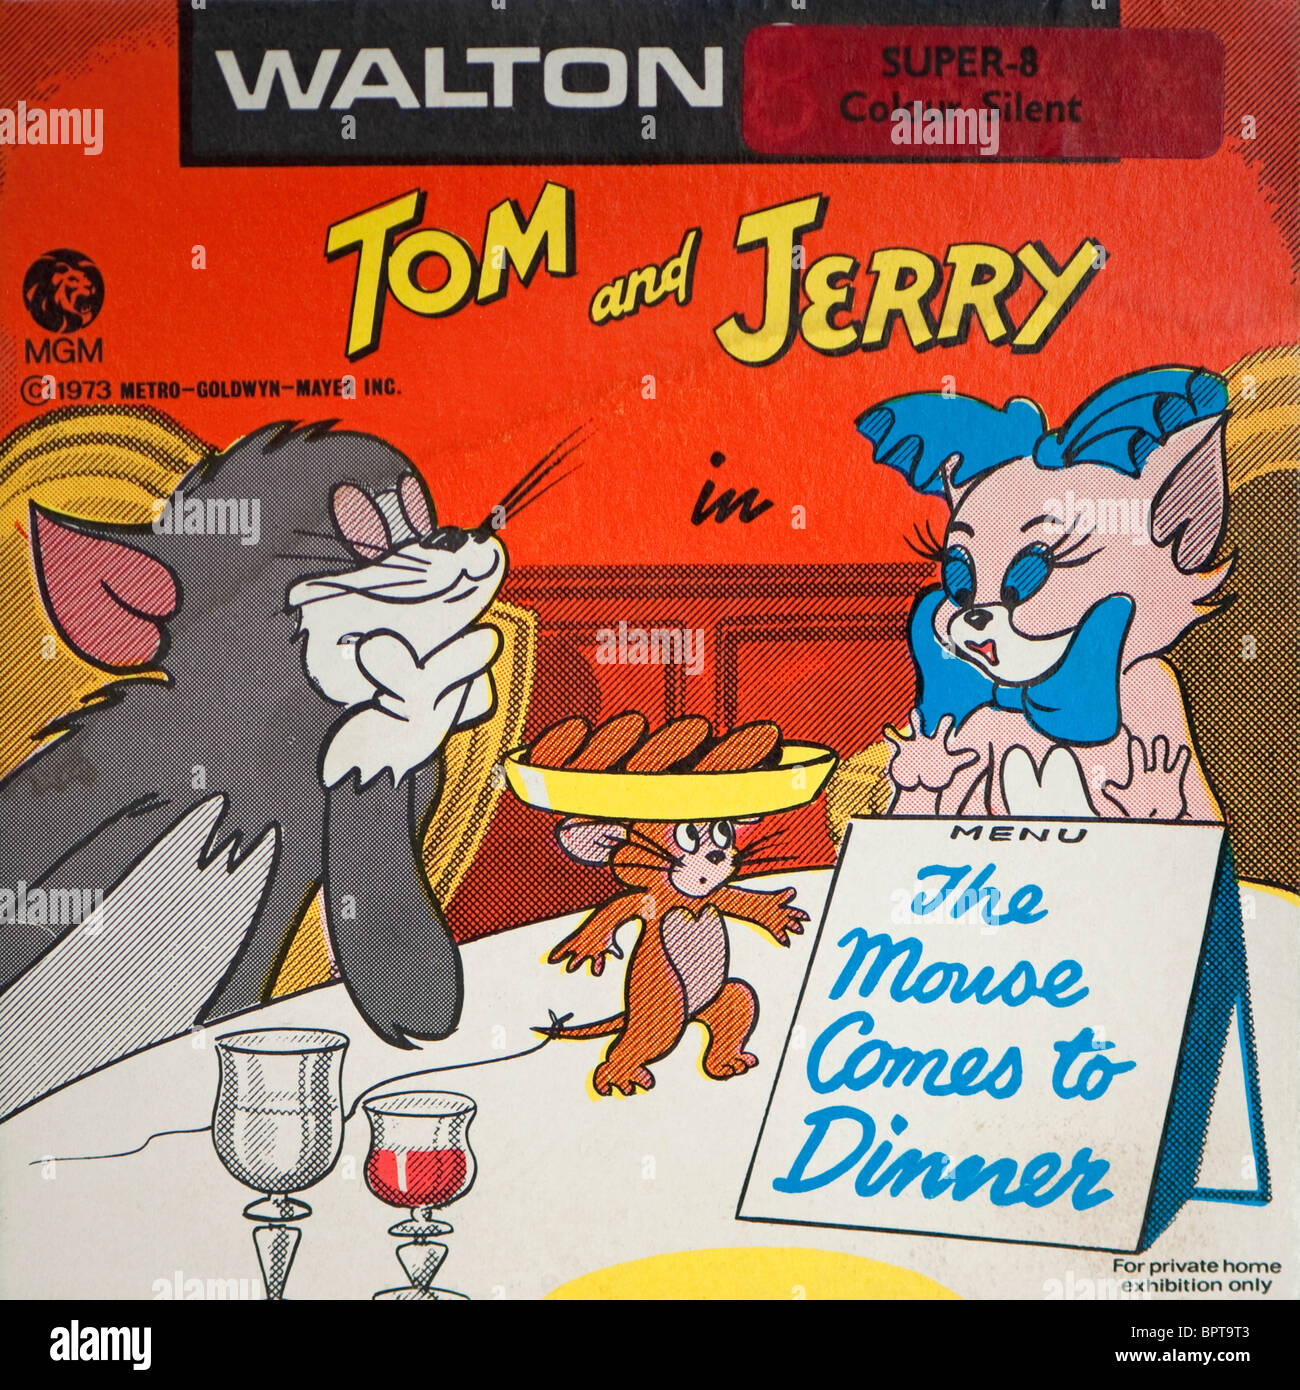 Cover packaging for a Super-8 Tom and Jerry film 'The Mouse Comes to Dinner' distributed by MGM. - Stock Image